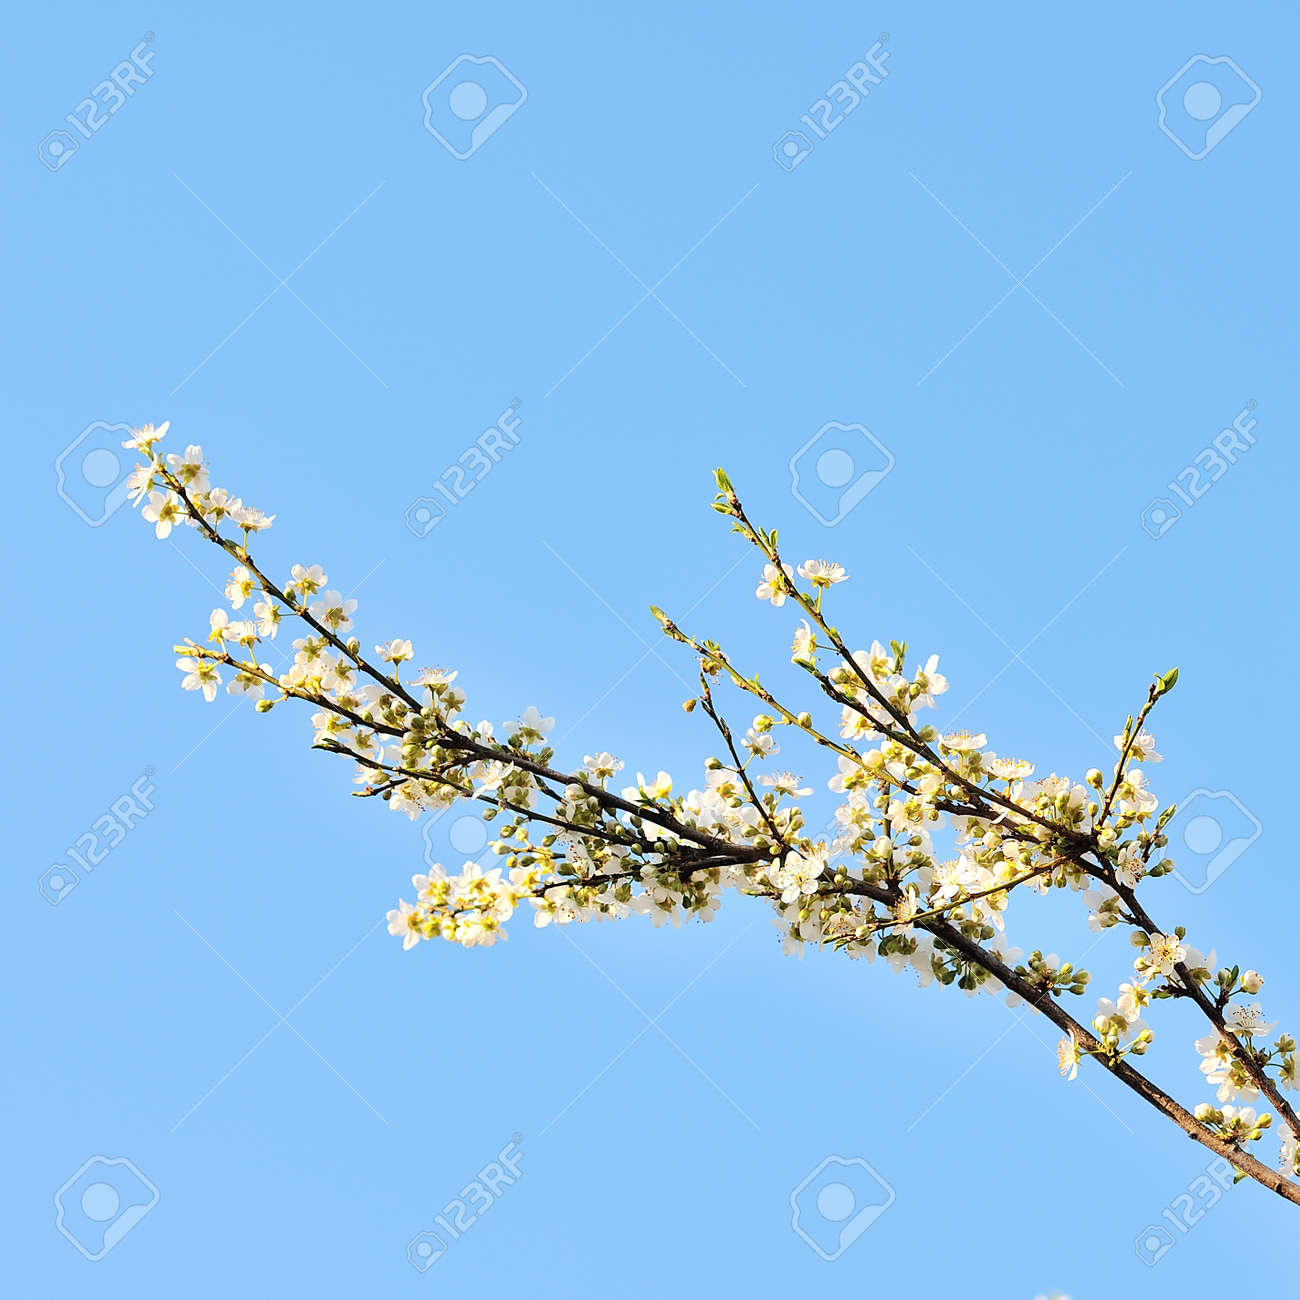 Blossoming Branches Of A Tree White Flowers On A Background Stock